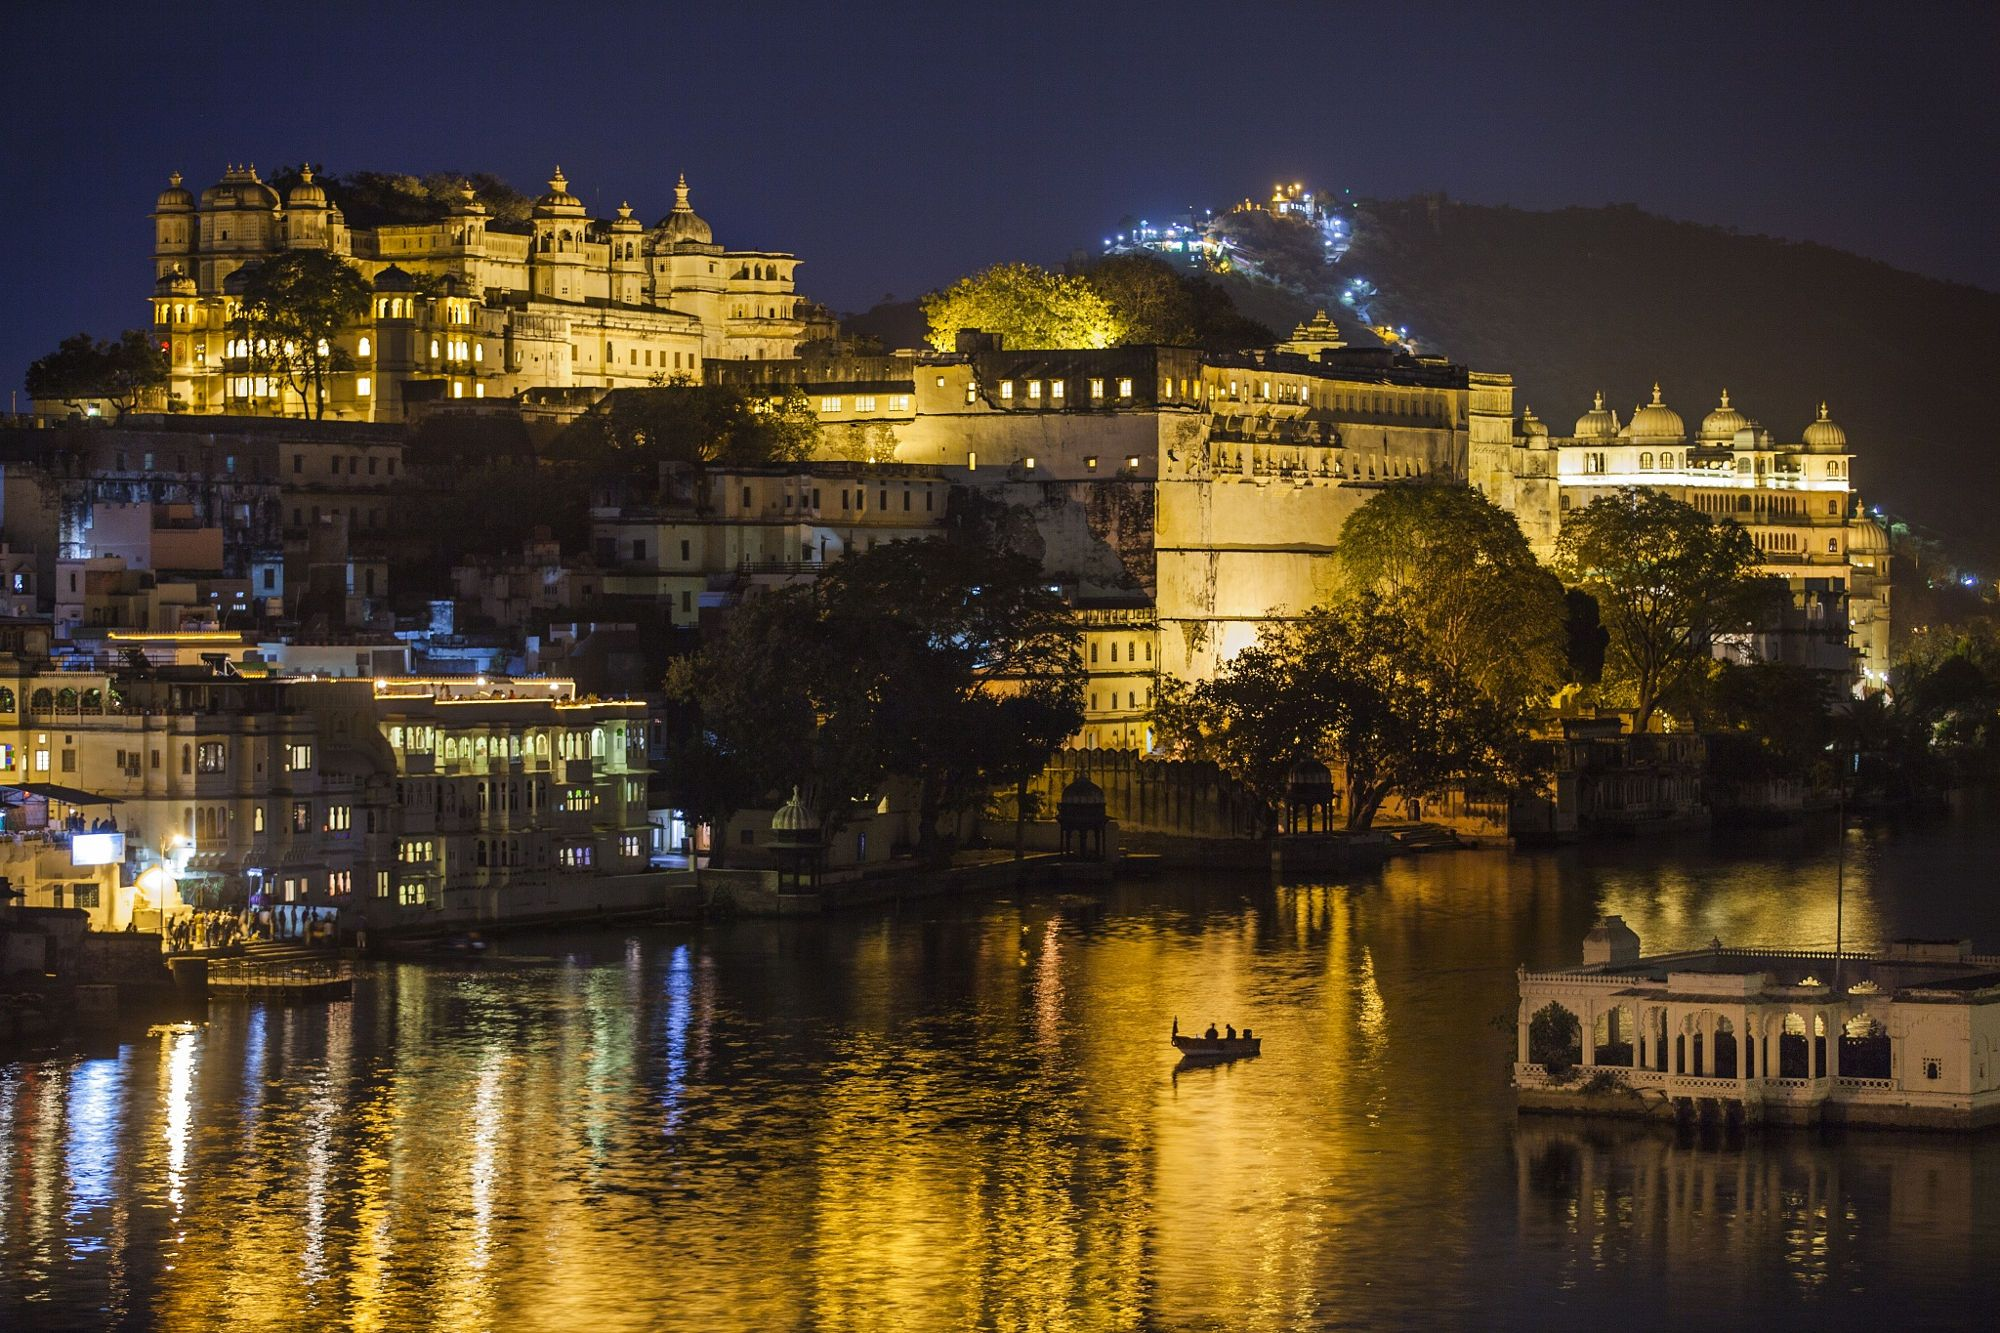 ***Dream Town (Udaipur, India) by Andrey Orlov on 500px